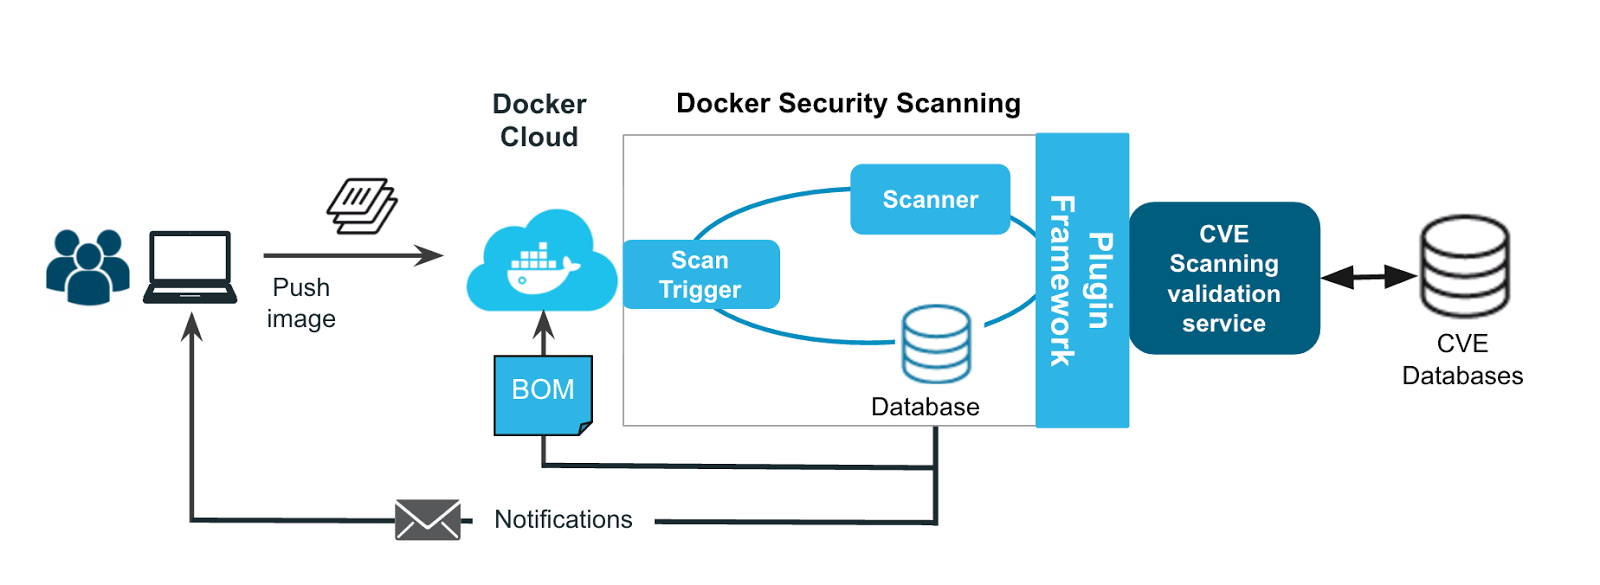 docker security scanning safeguards the container content lifecycle